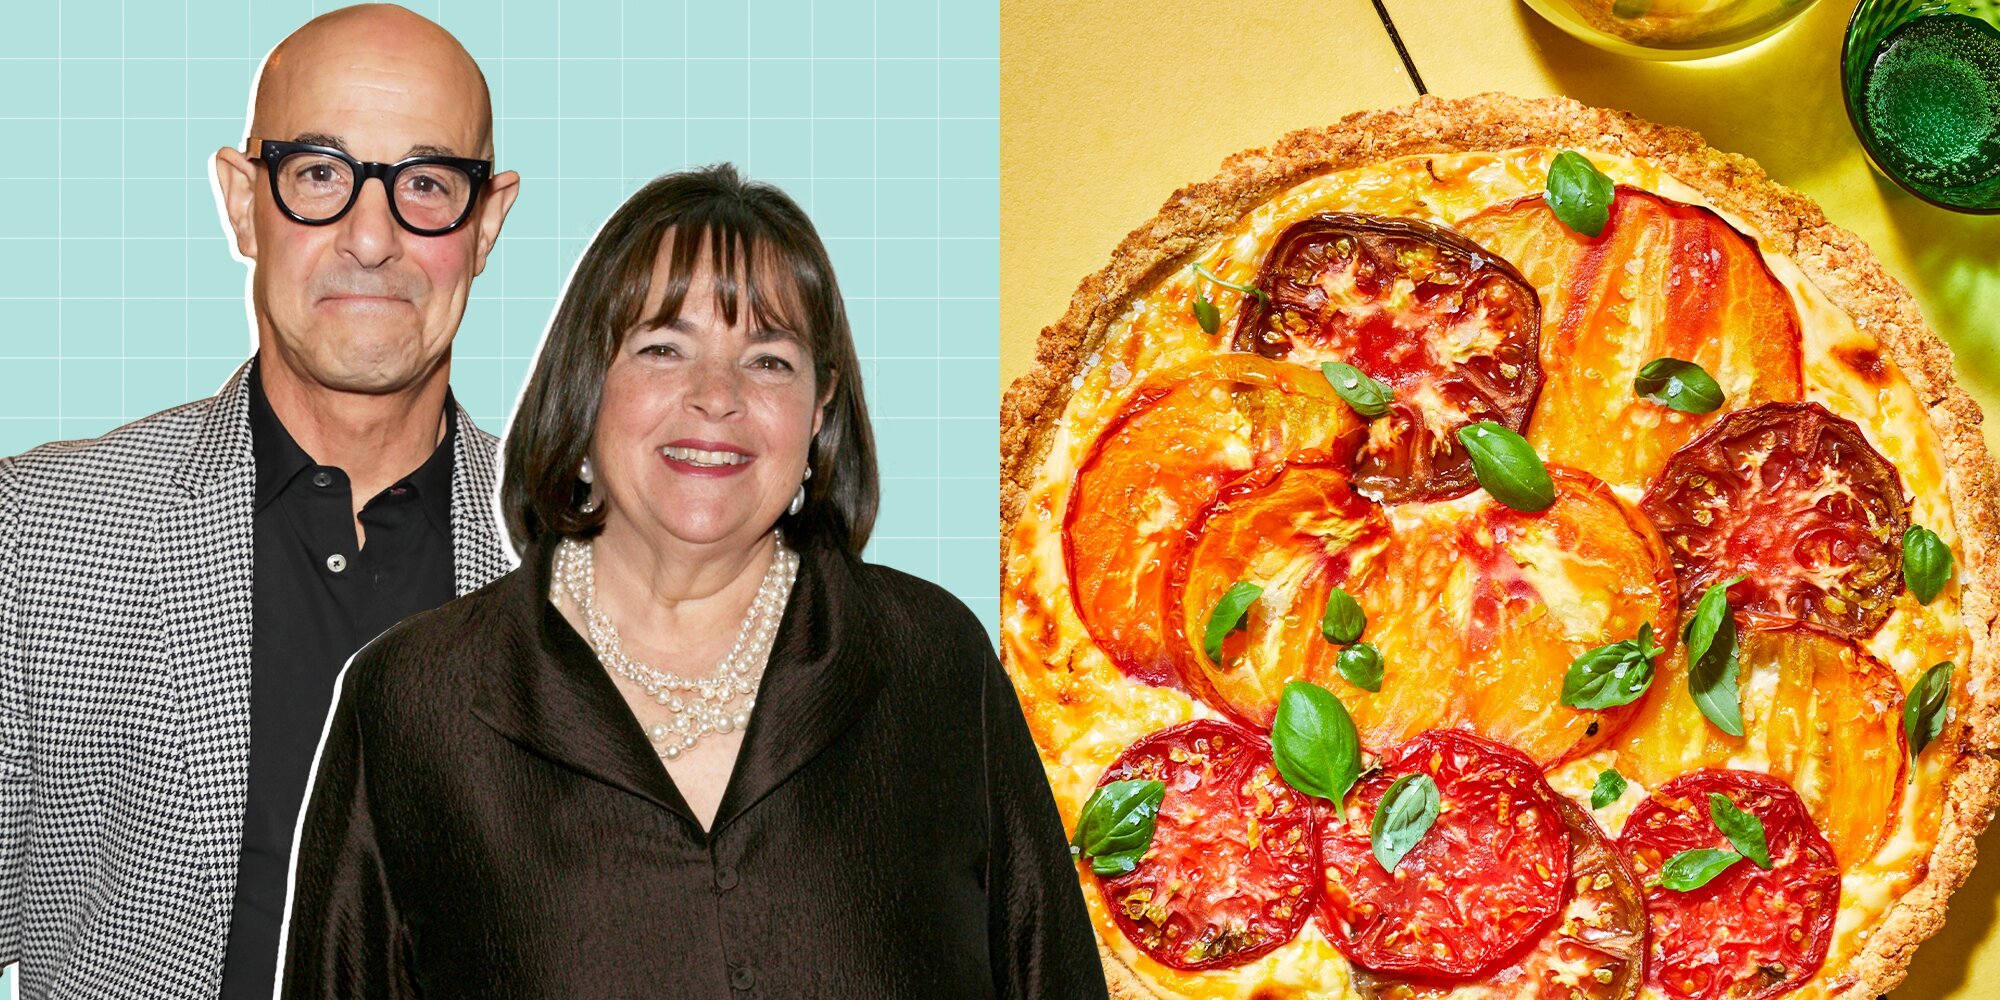 Stanley Tucci Made Ina Garten's Tomato & Goat Cheese Crostata—and We're Making It ASAP